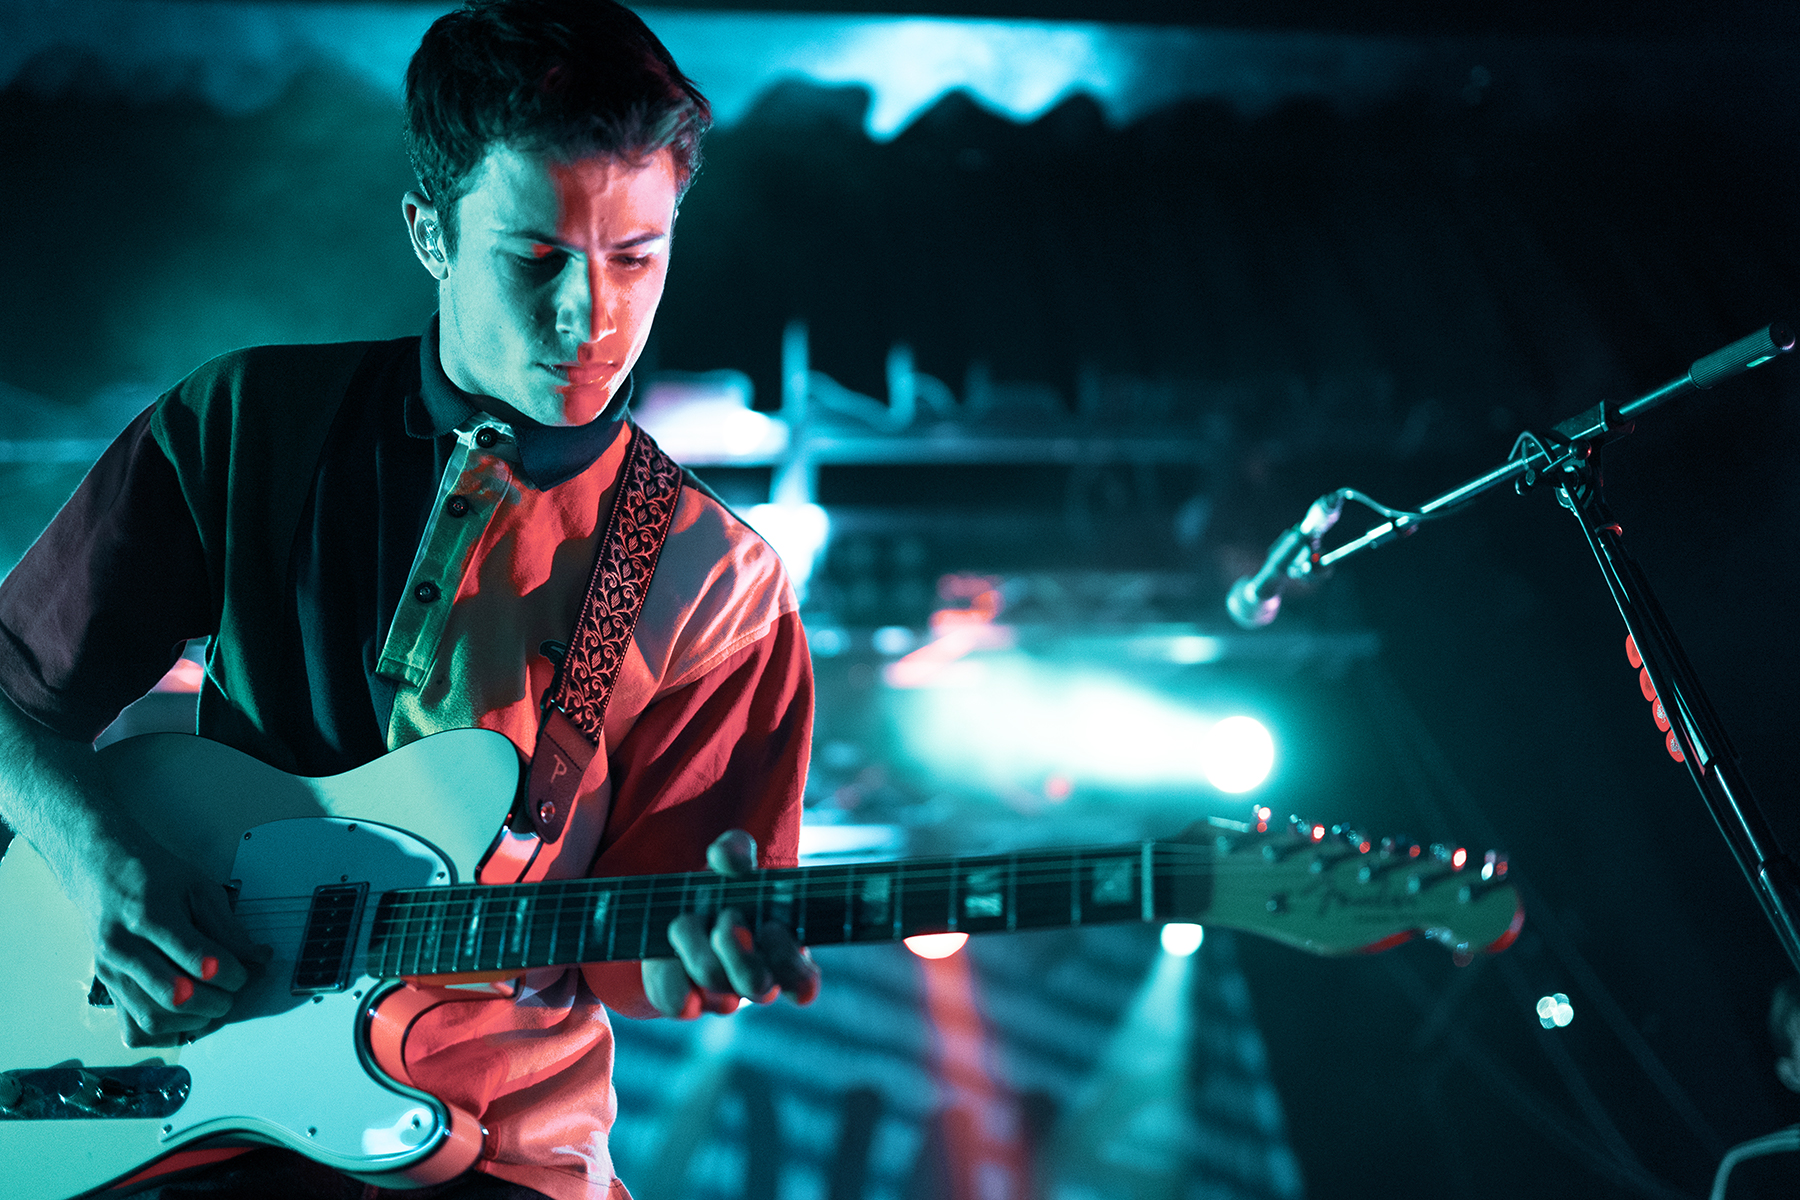 Wallows - Electric Brixton - 06_06_19 - Milly McAlister 1 .jpg